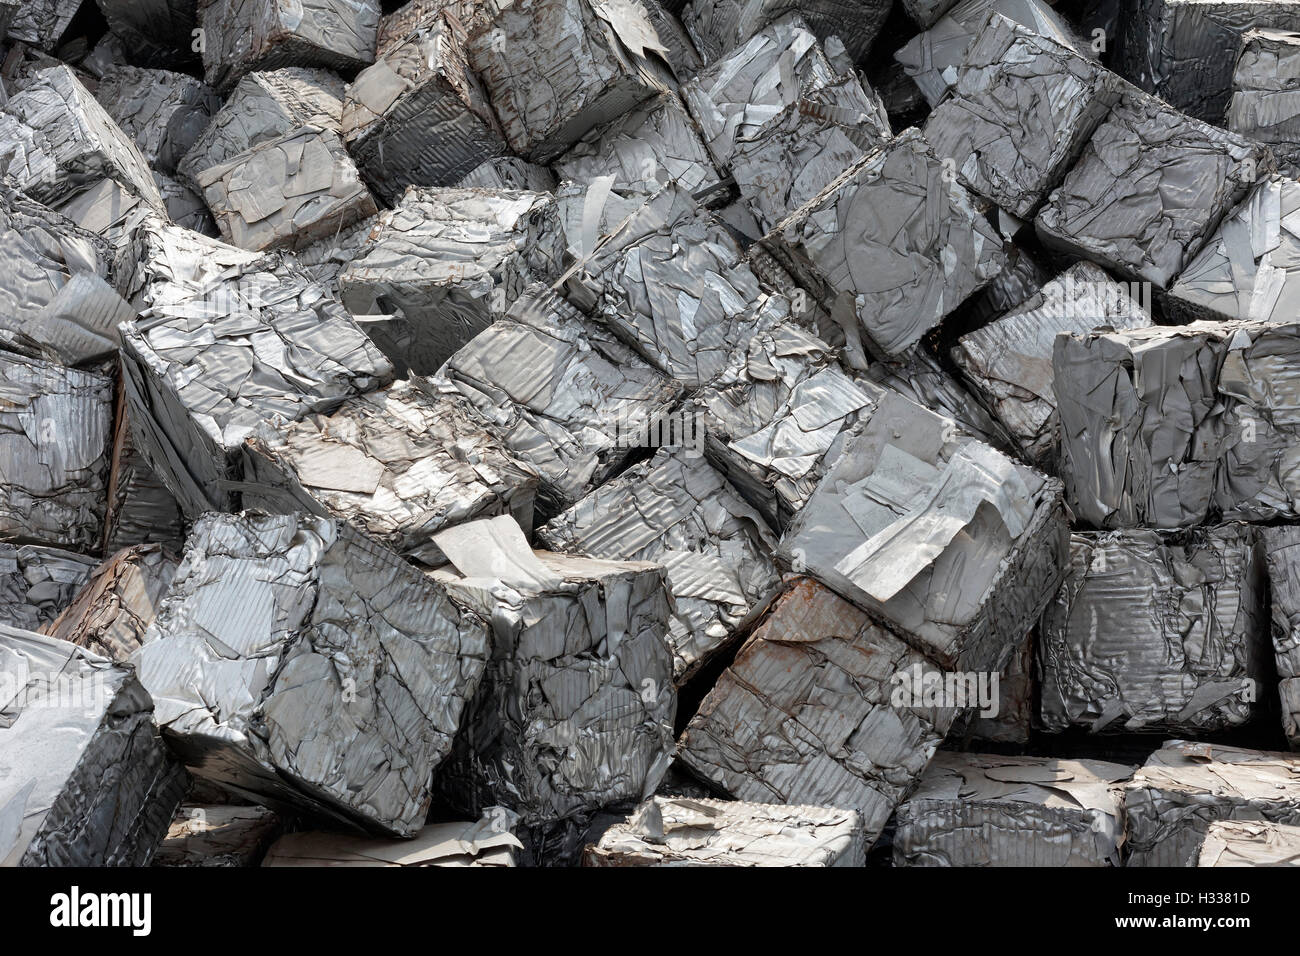 Metal waste from industrial production - Stock Image